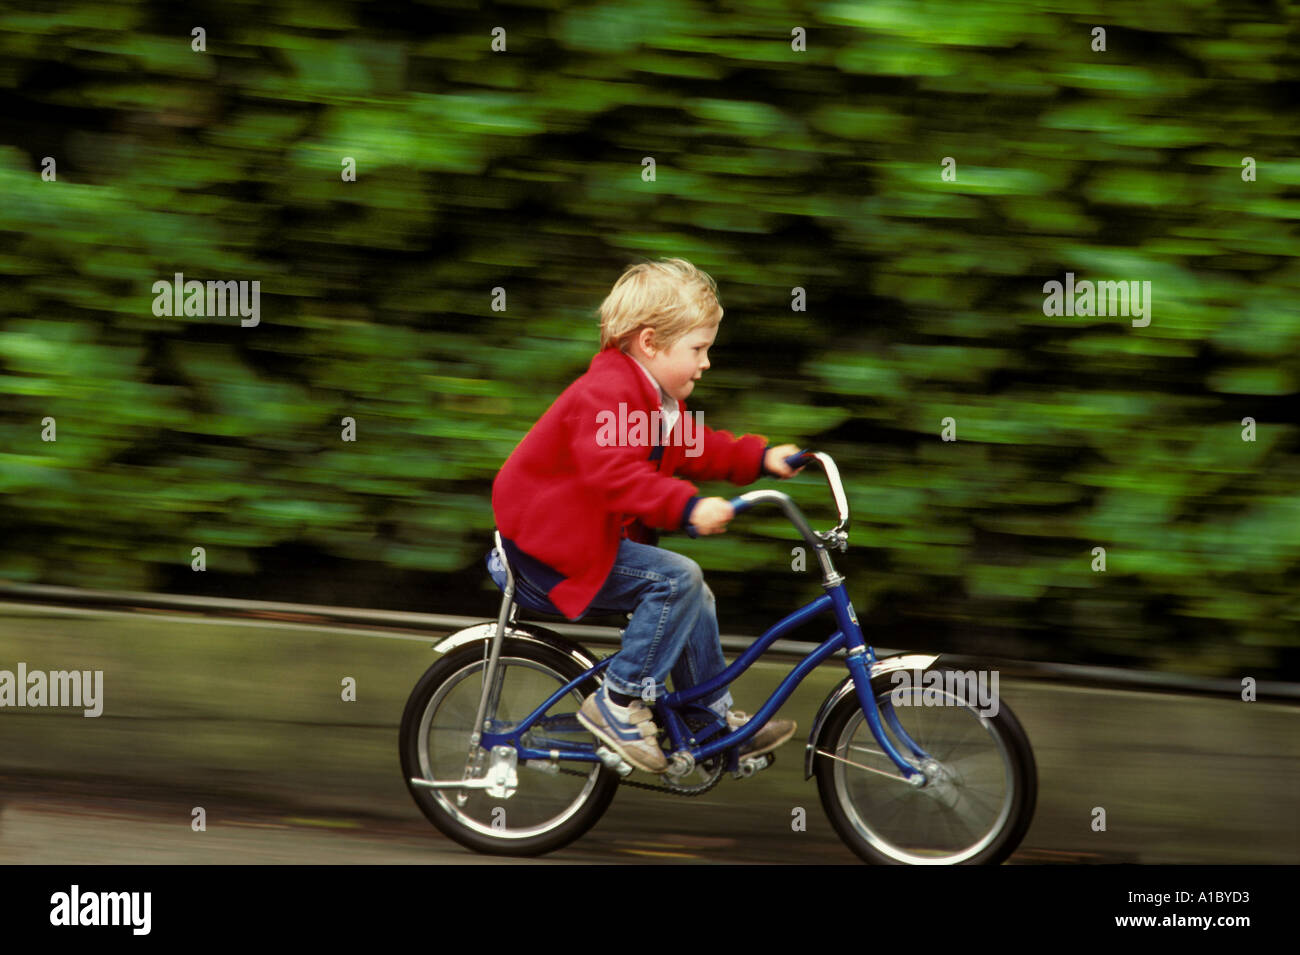 A six year old boy speeds determinedly on his first bicycle Stock Photo